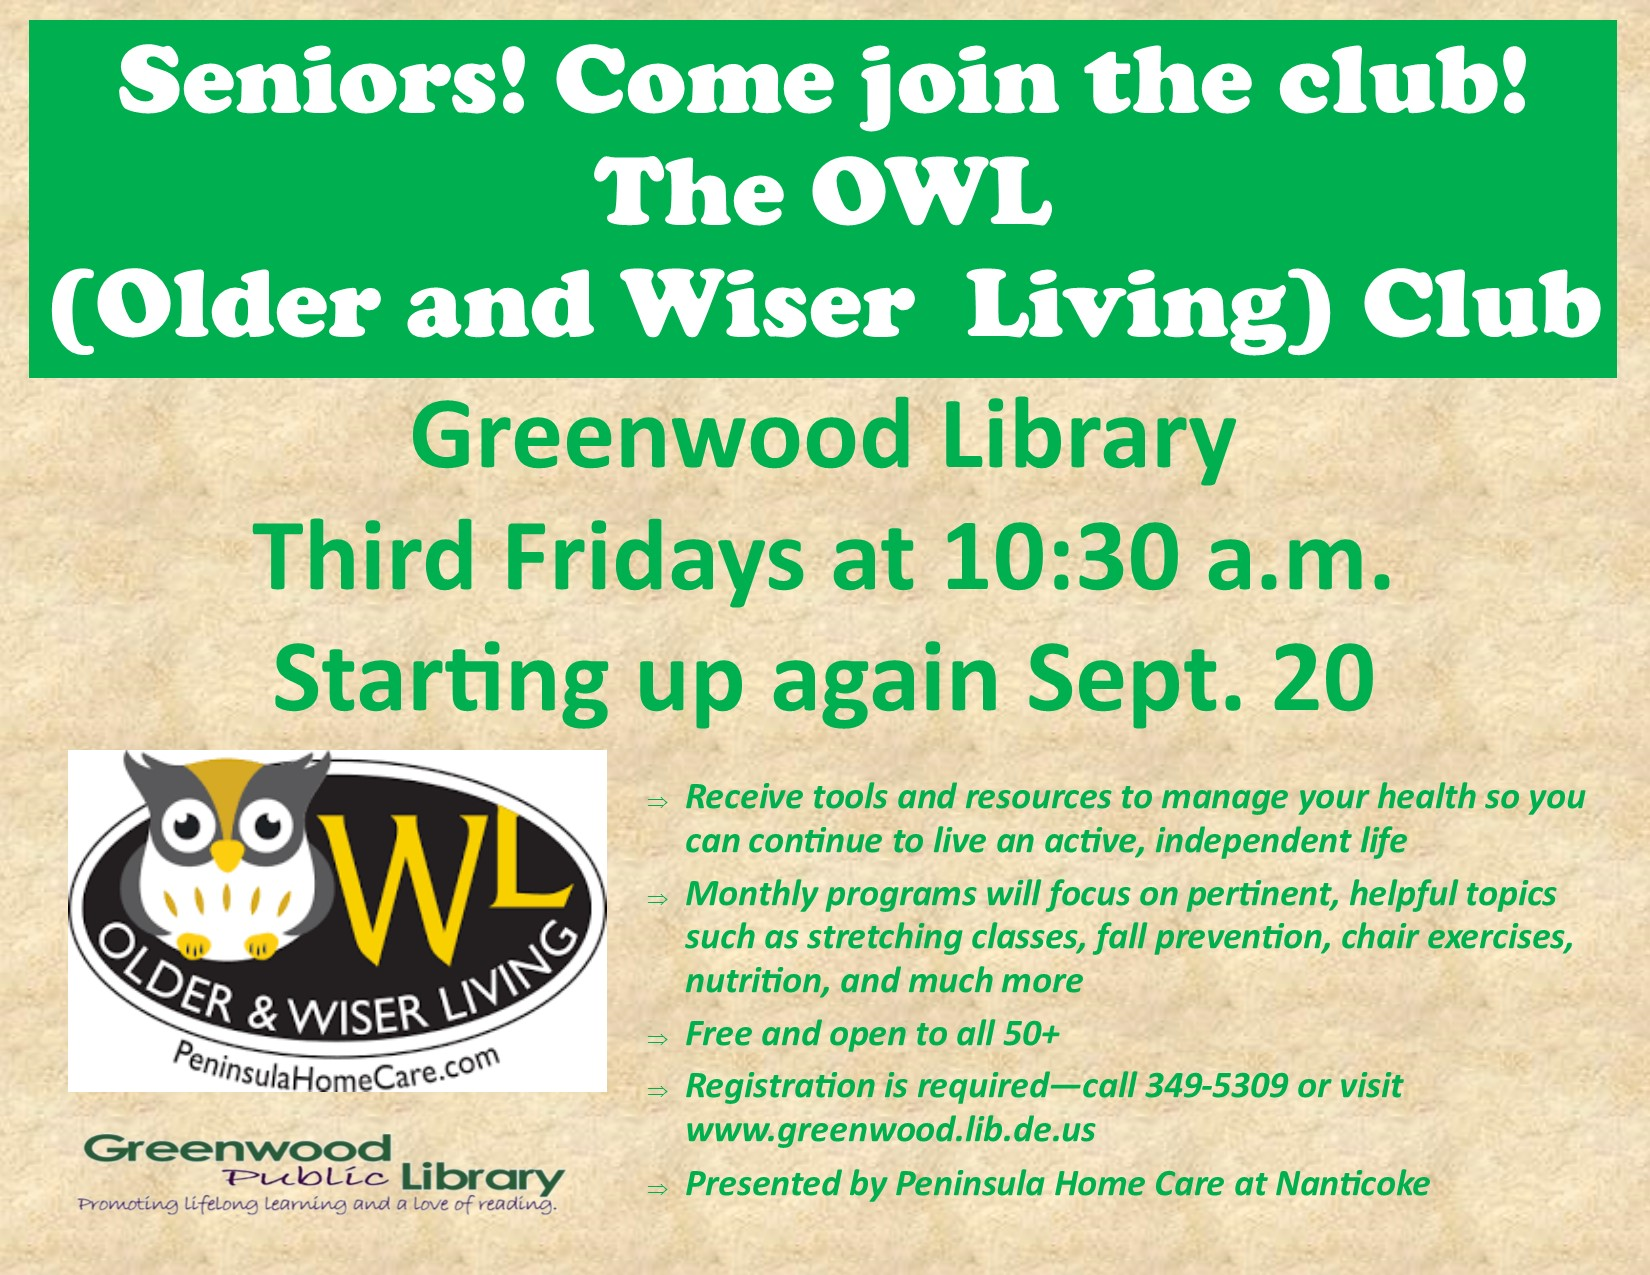 OWL (Older & Wiser Living) Program for Seniors 50+ from Peninsula Home Care